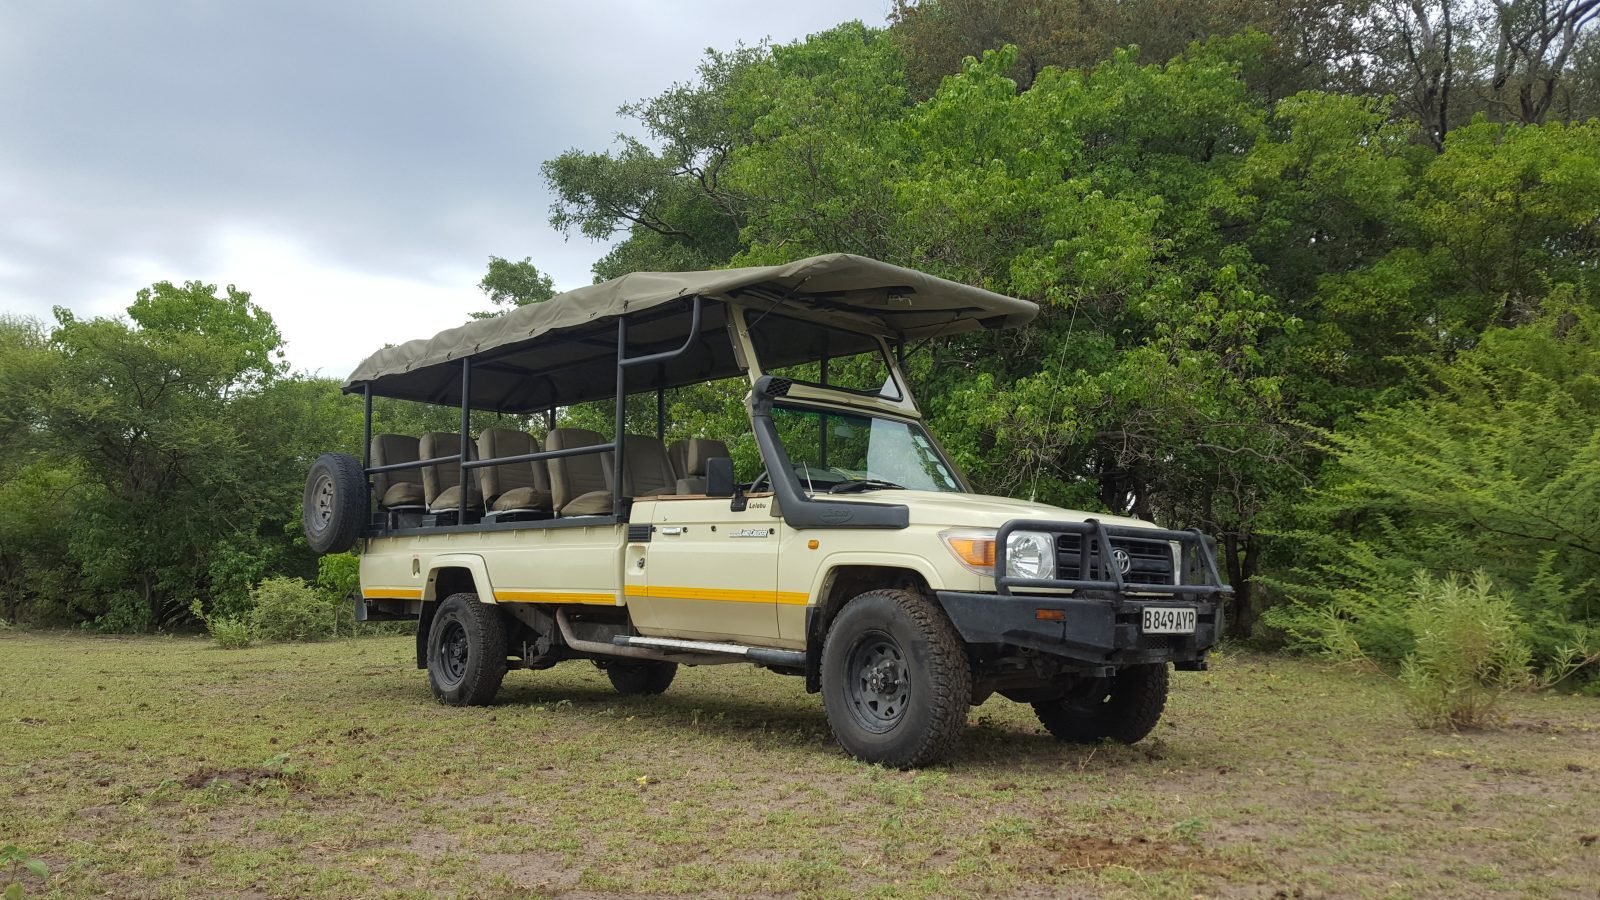 Jenman African Safaris | Vehicles | Botswana 4x4 Toyota Land Cruiser